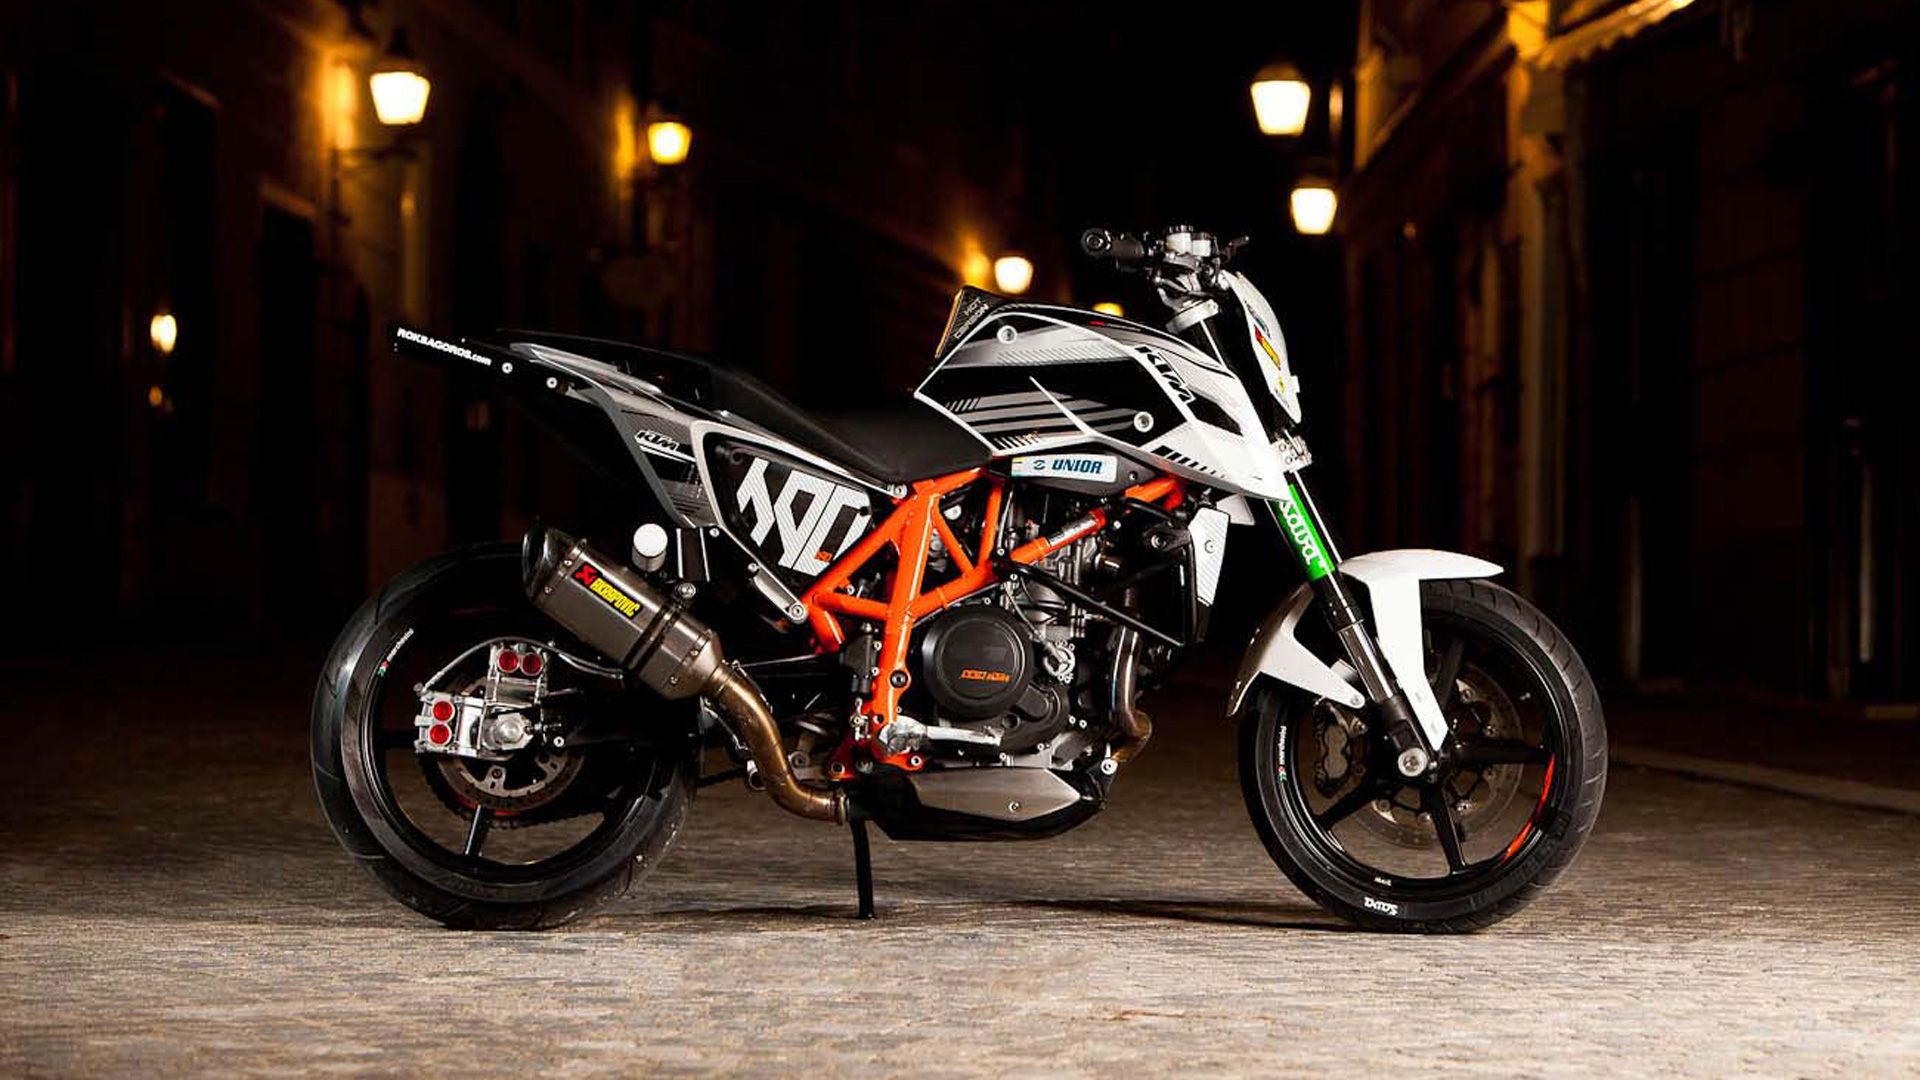 Awesome Ktm Duke Sport Wallpaper Hd Pozadine Check More At Http